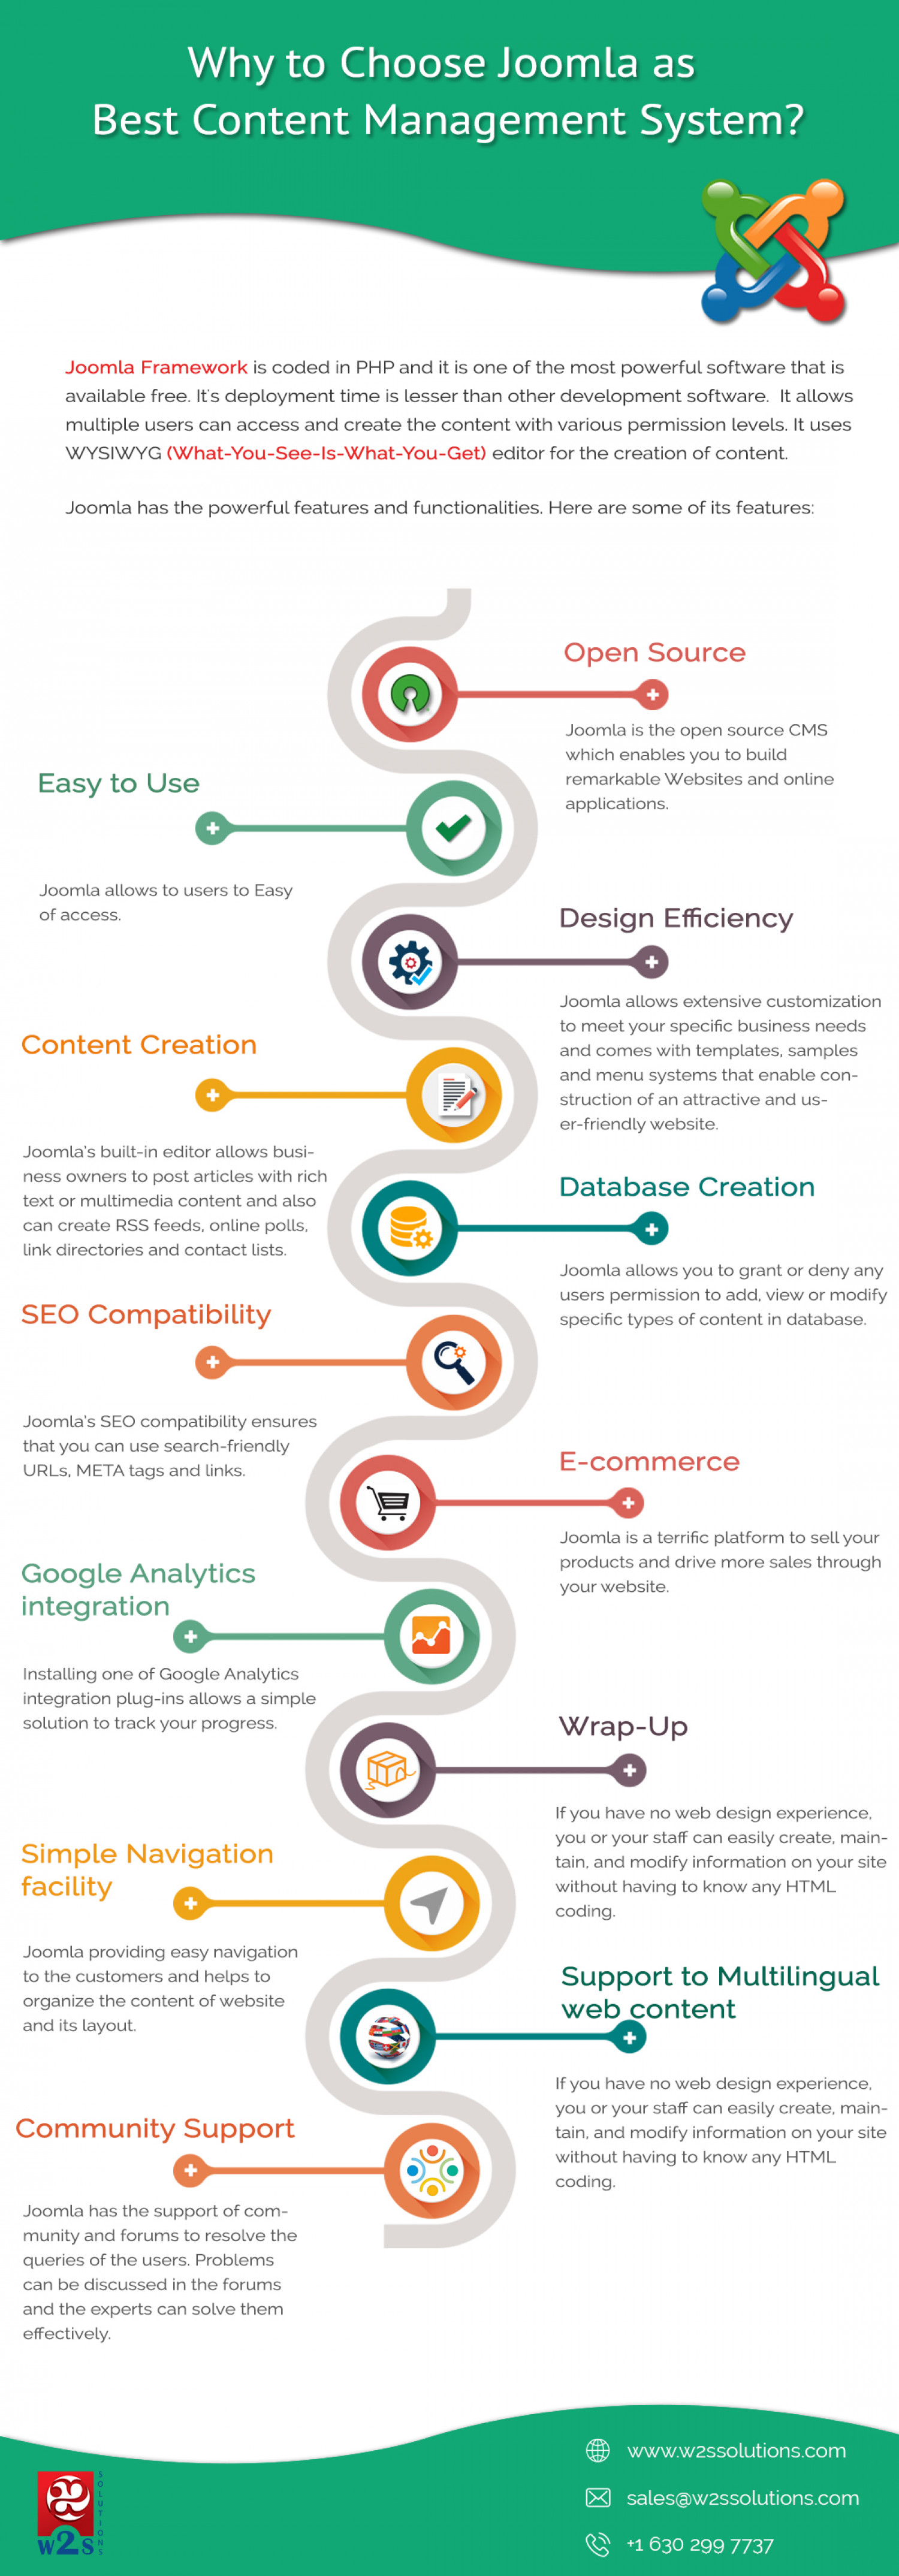 Why to Choose Joomla as Best Content Management System? Infographic